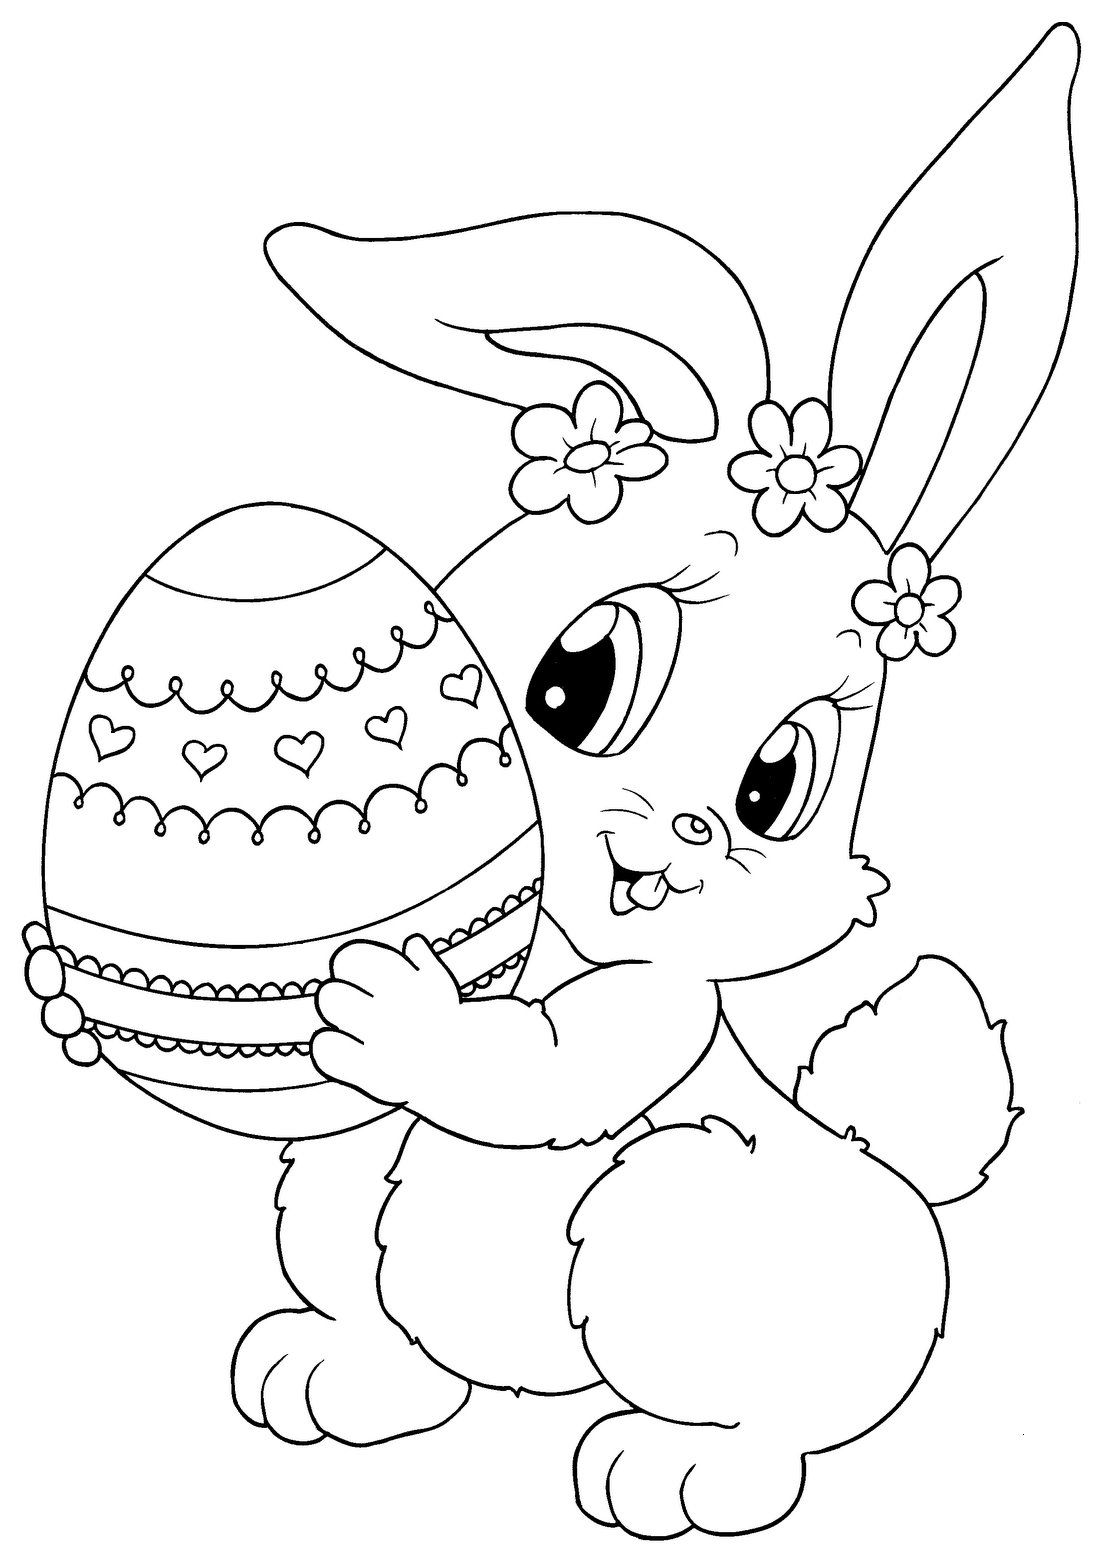 Top 15 Free Printable Easter Bunny Coloring Pages Online | Pinterest ...